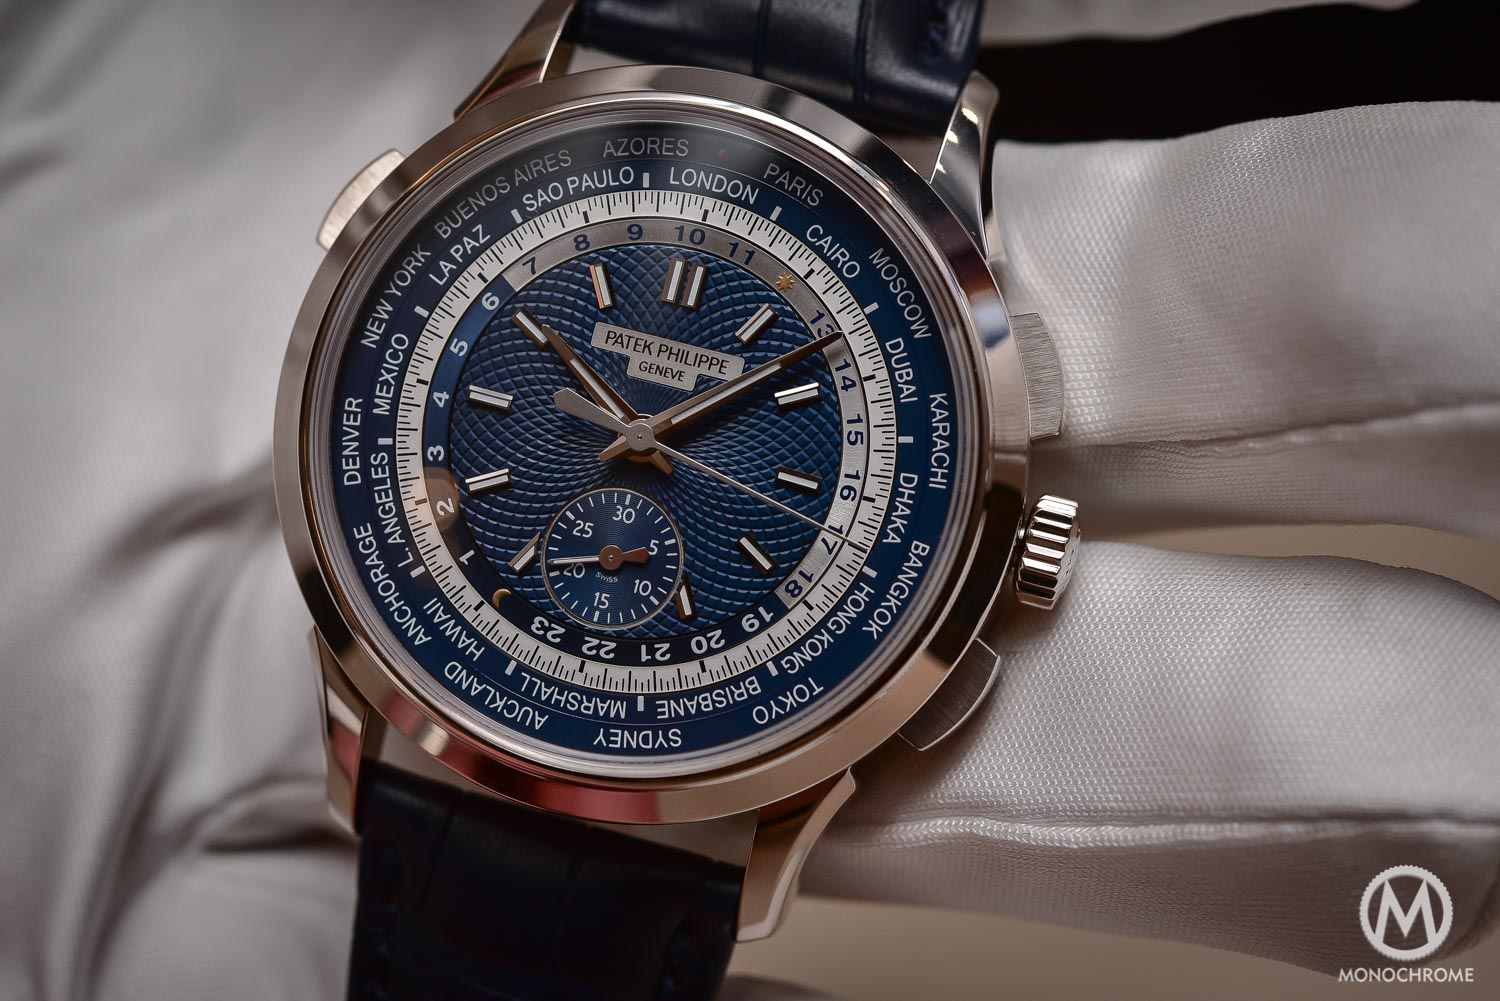 Patek philippe 5930g world time chronograph baselworld 2016 with price monochrome watches for Patek watches